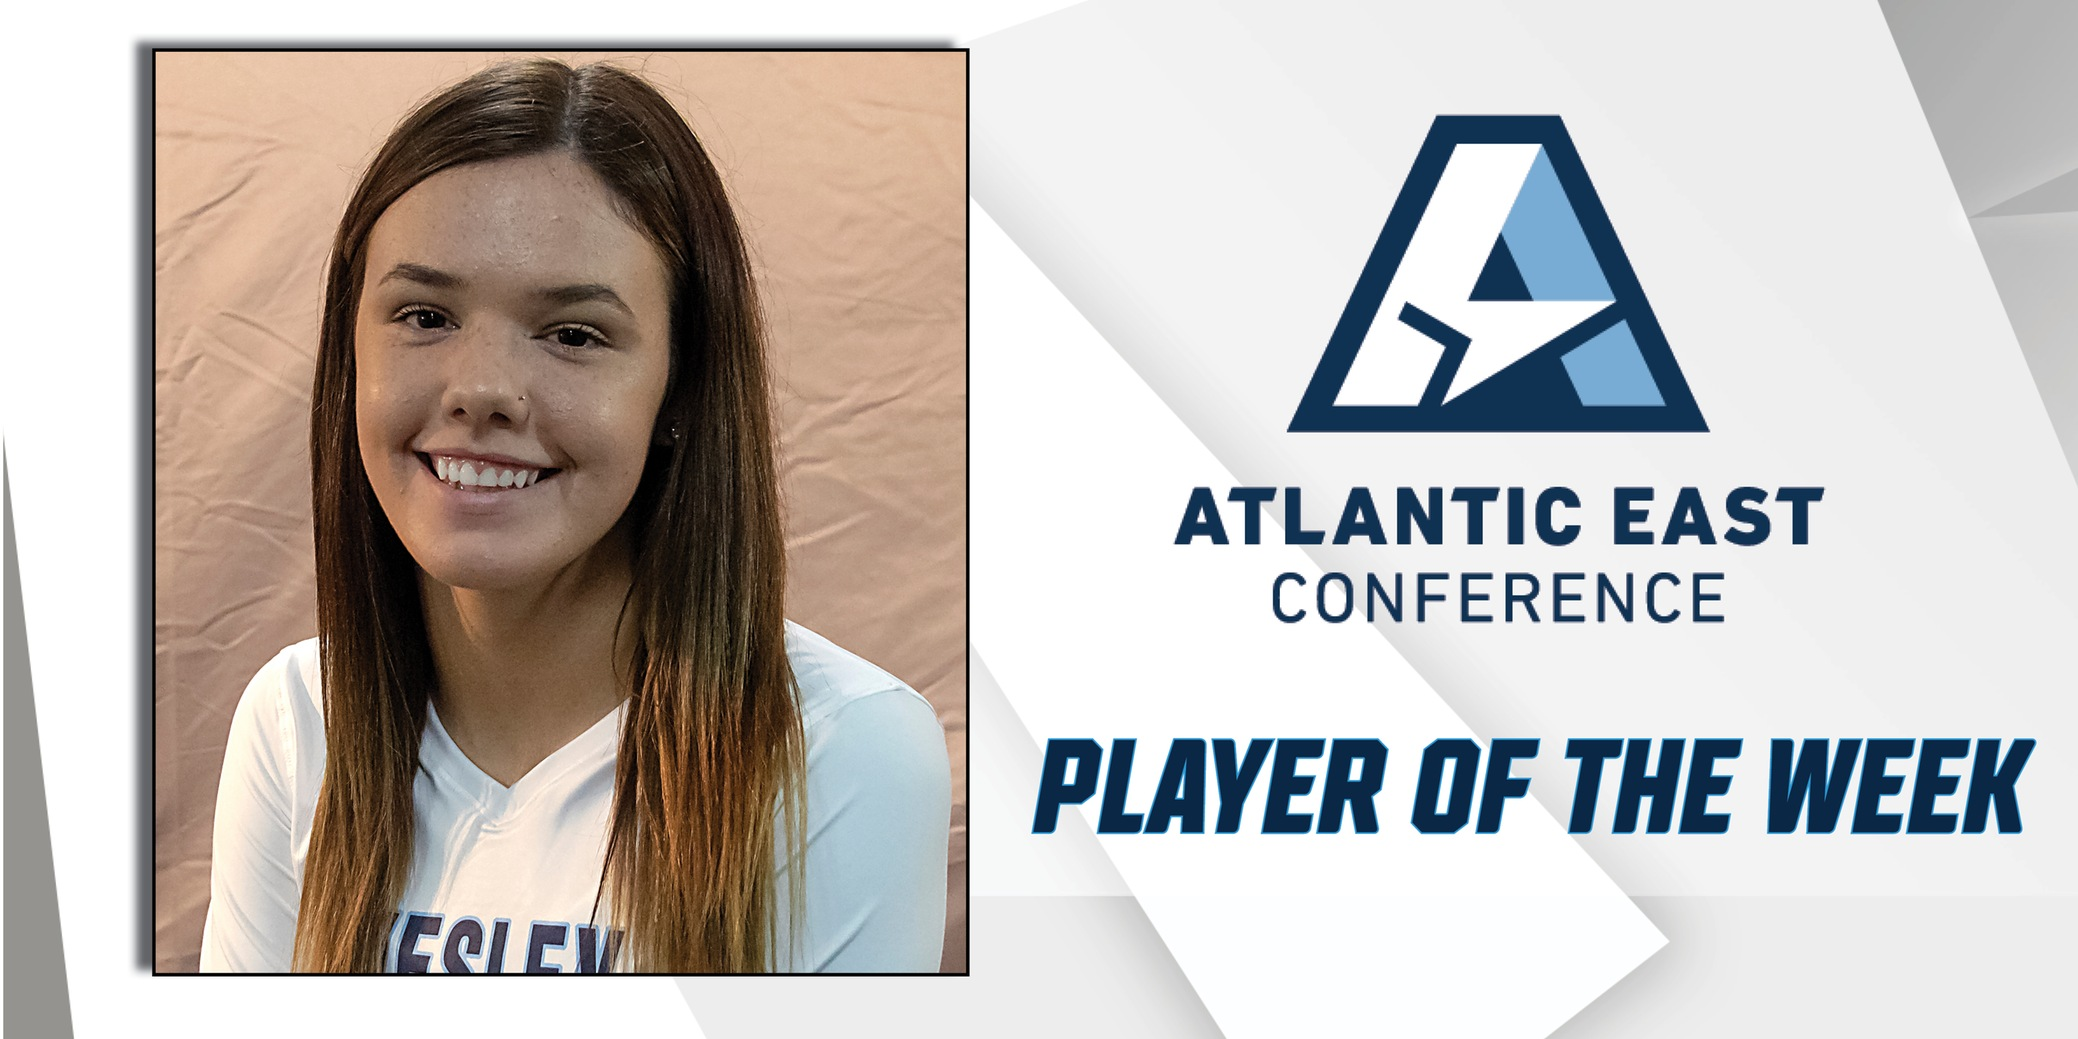 Clifford tabbed as Atlantic East Defensive Player of the Week